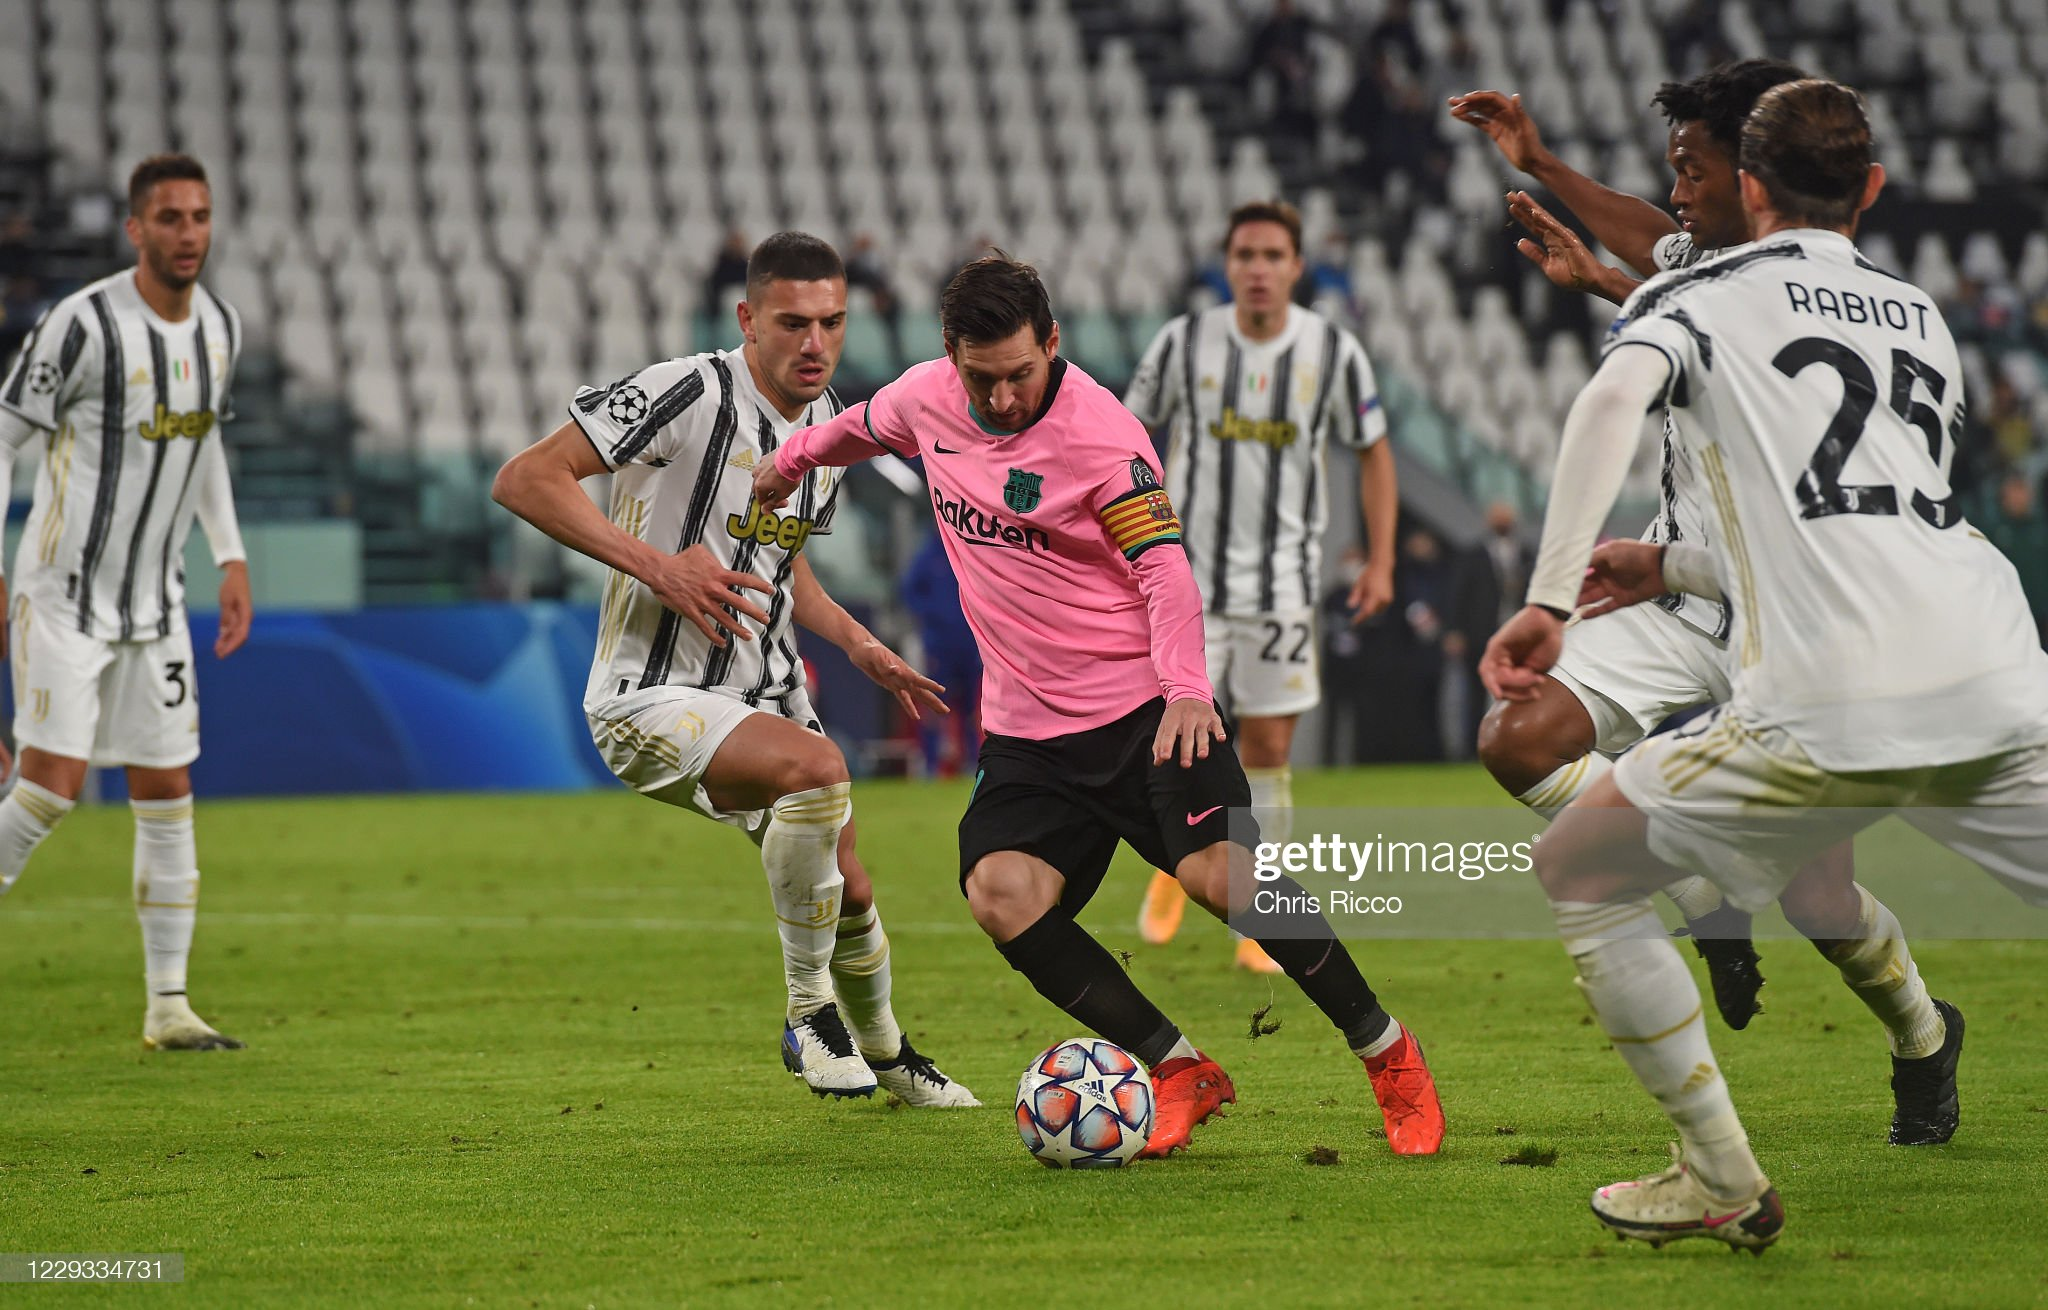 Barcelona vs Juventus Preview, prediction and odds